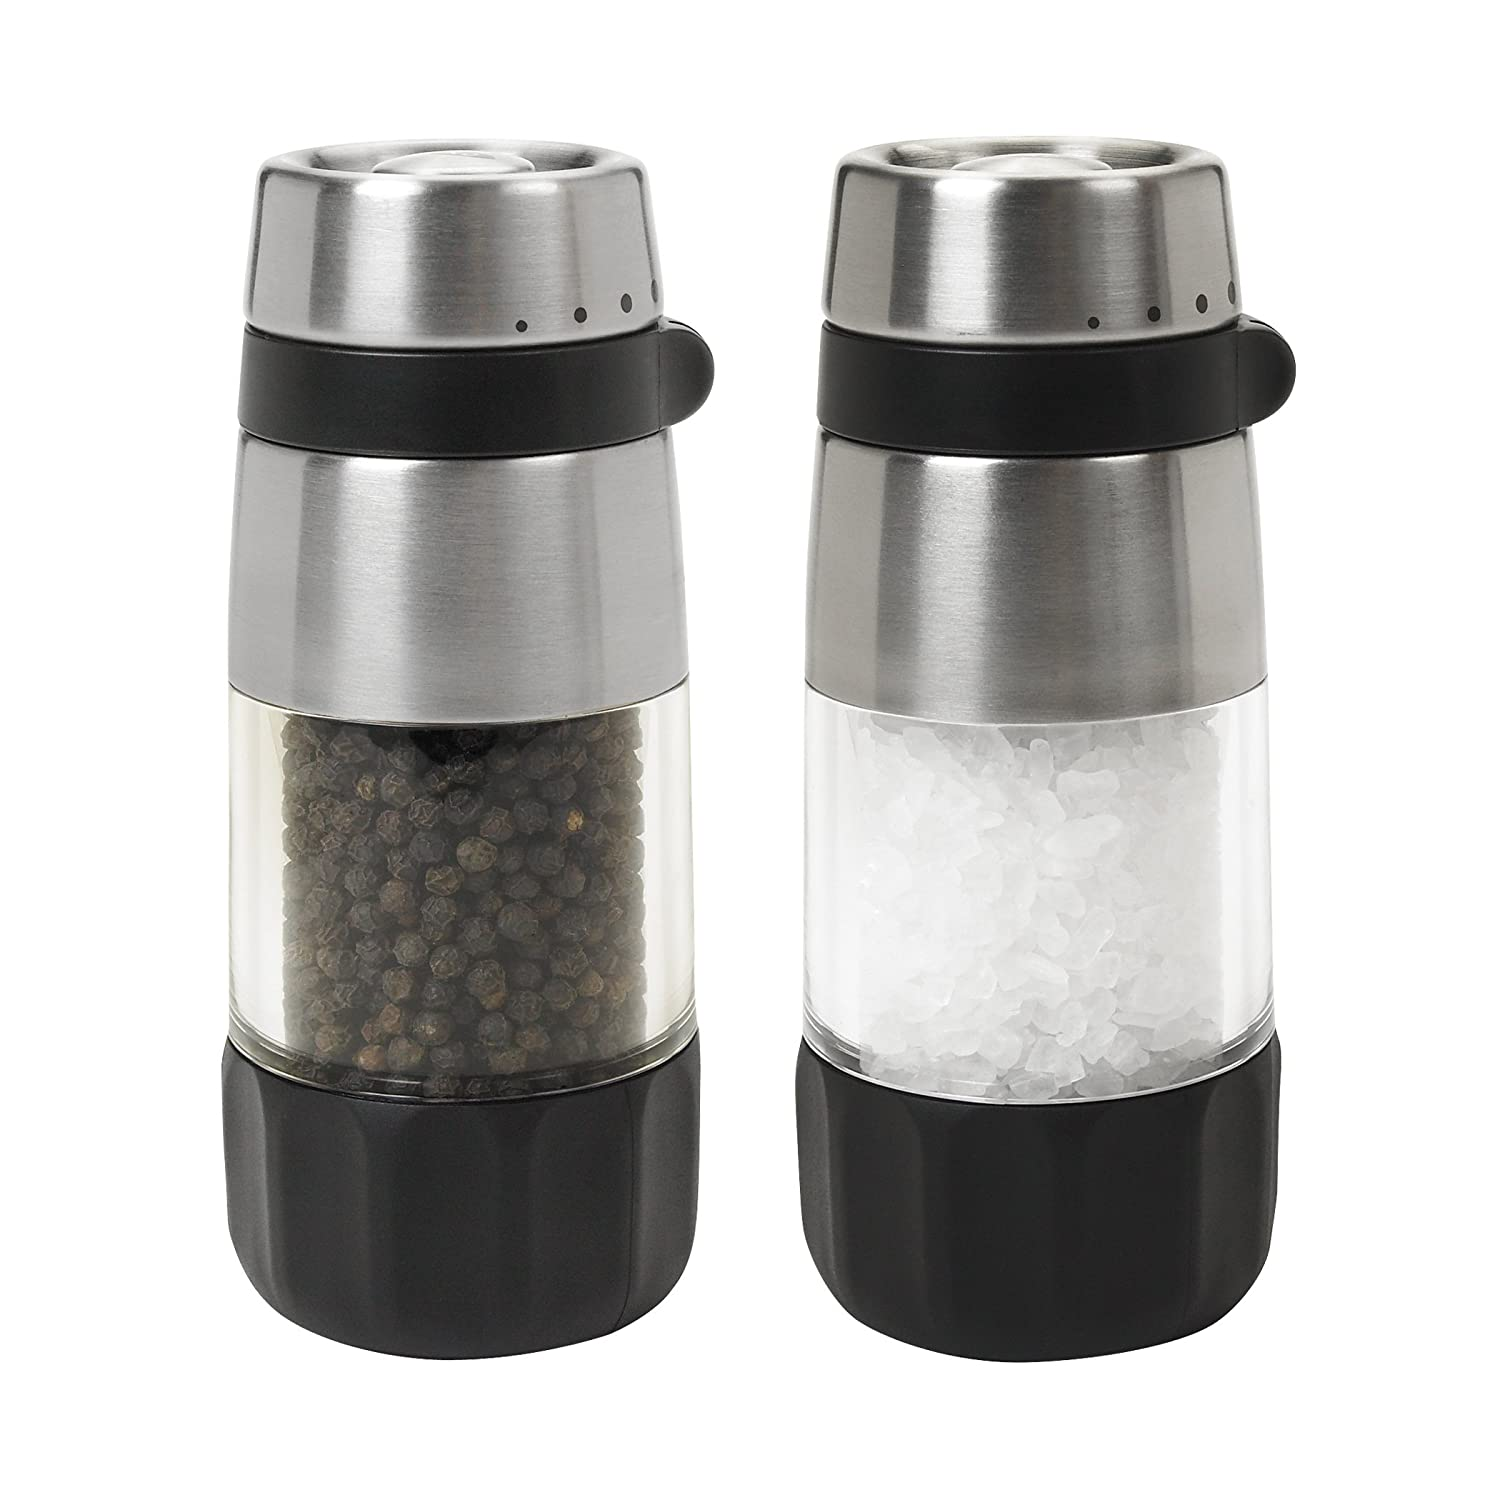 OXO Salt and Pepper Grinder Set, Stainless Steel